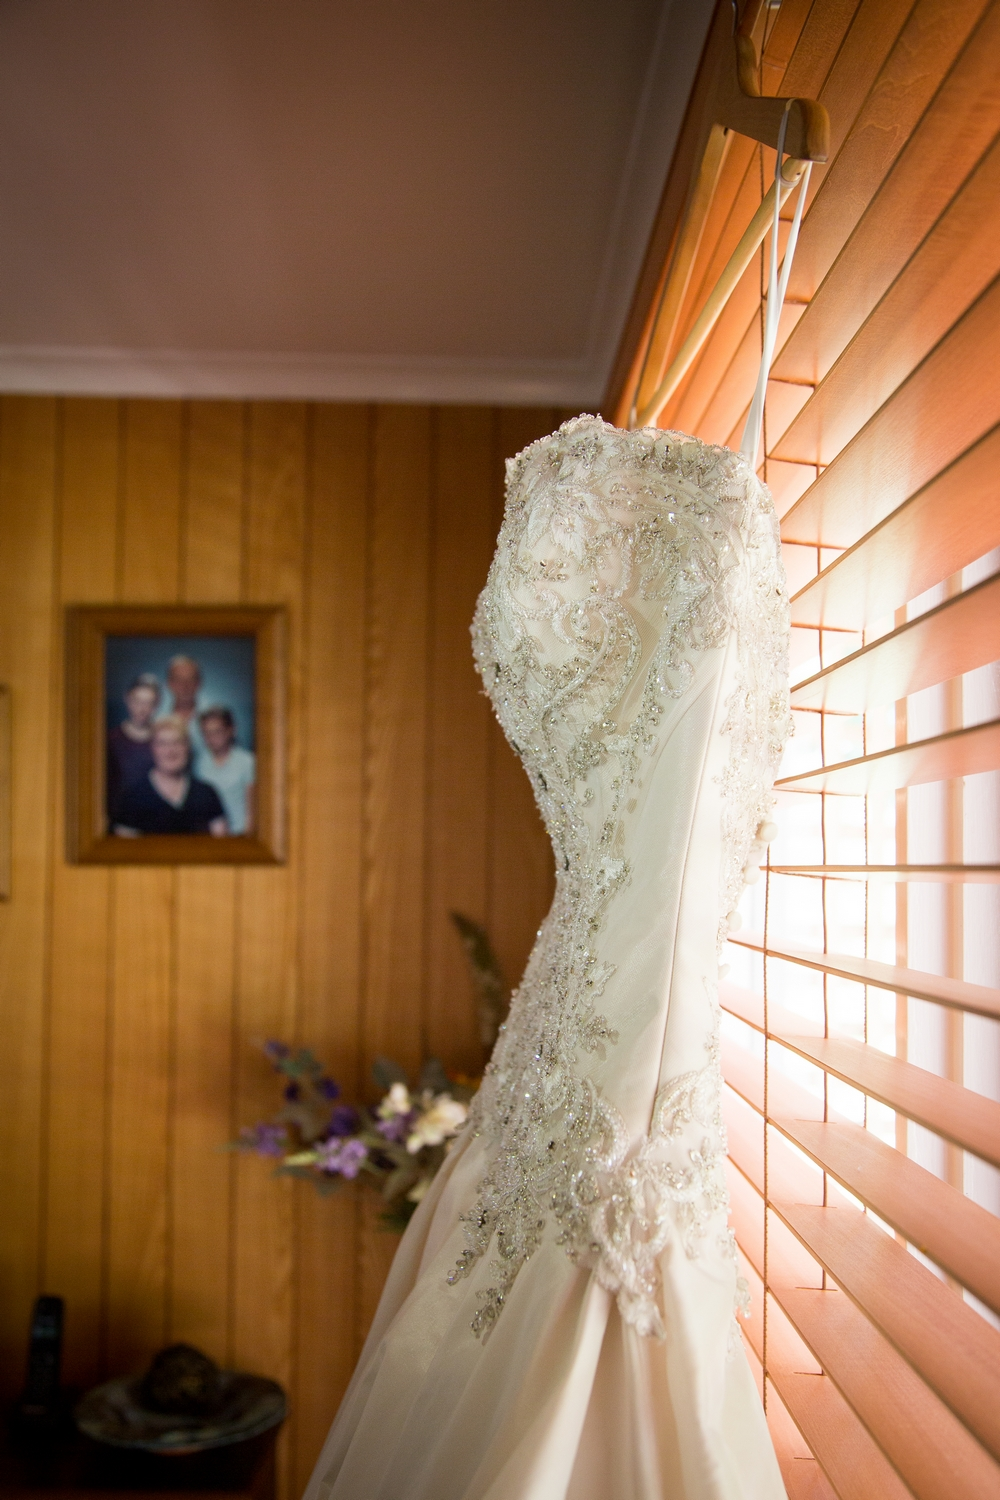 the-wedding-dress.jpg